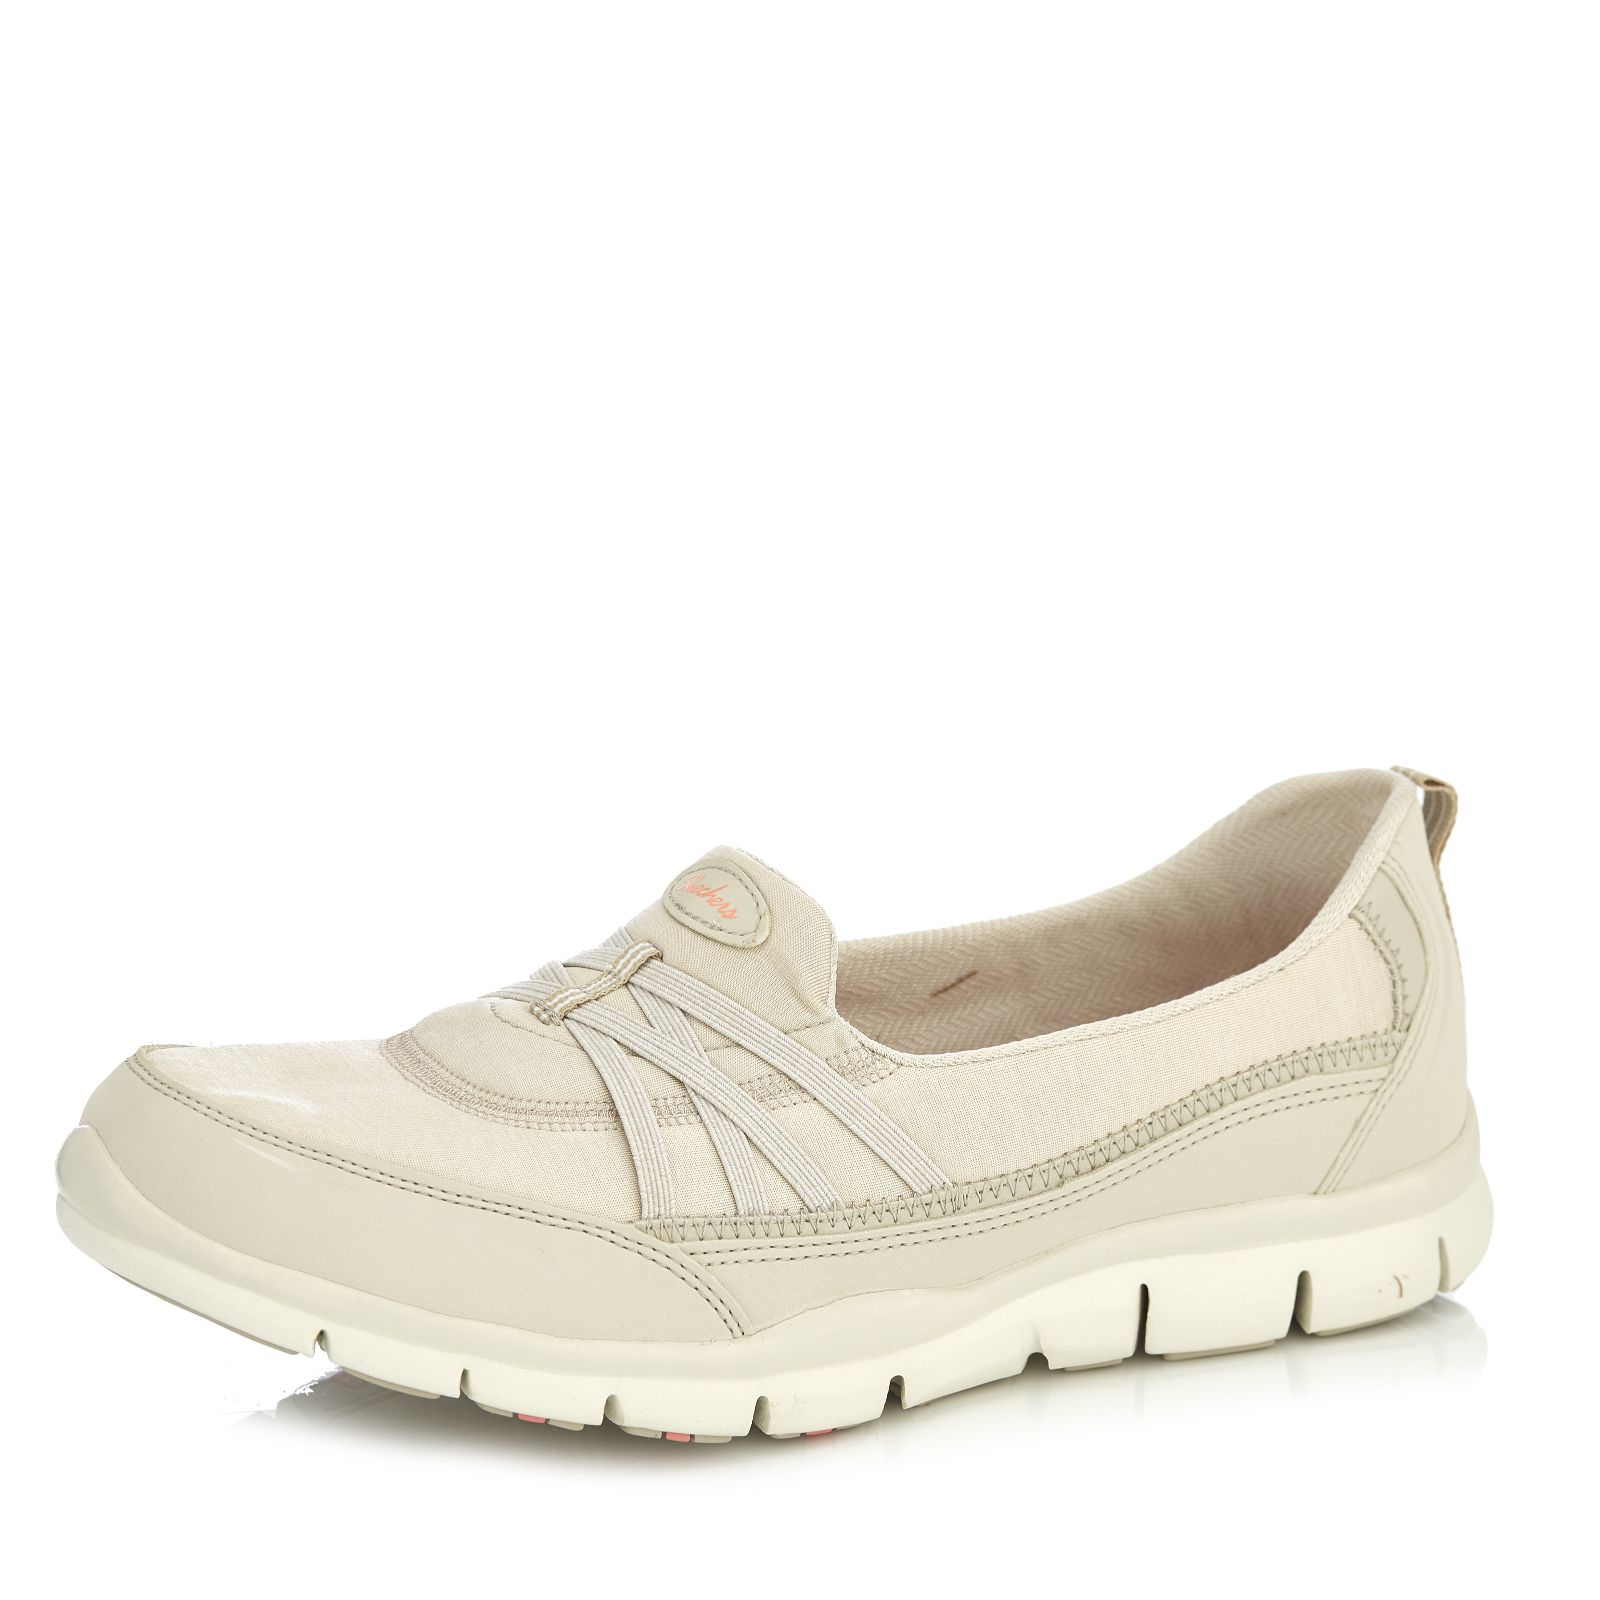 buy online 10d71 42fc8 Skechers Gratis True Heart Heathered Jersey Slip On Trainer with ...